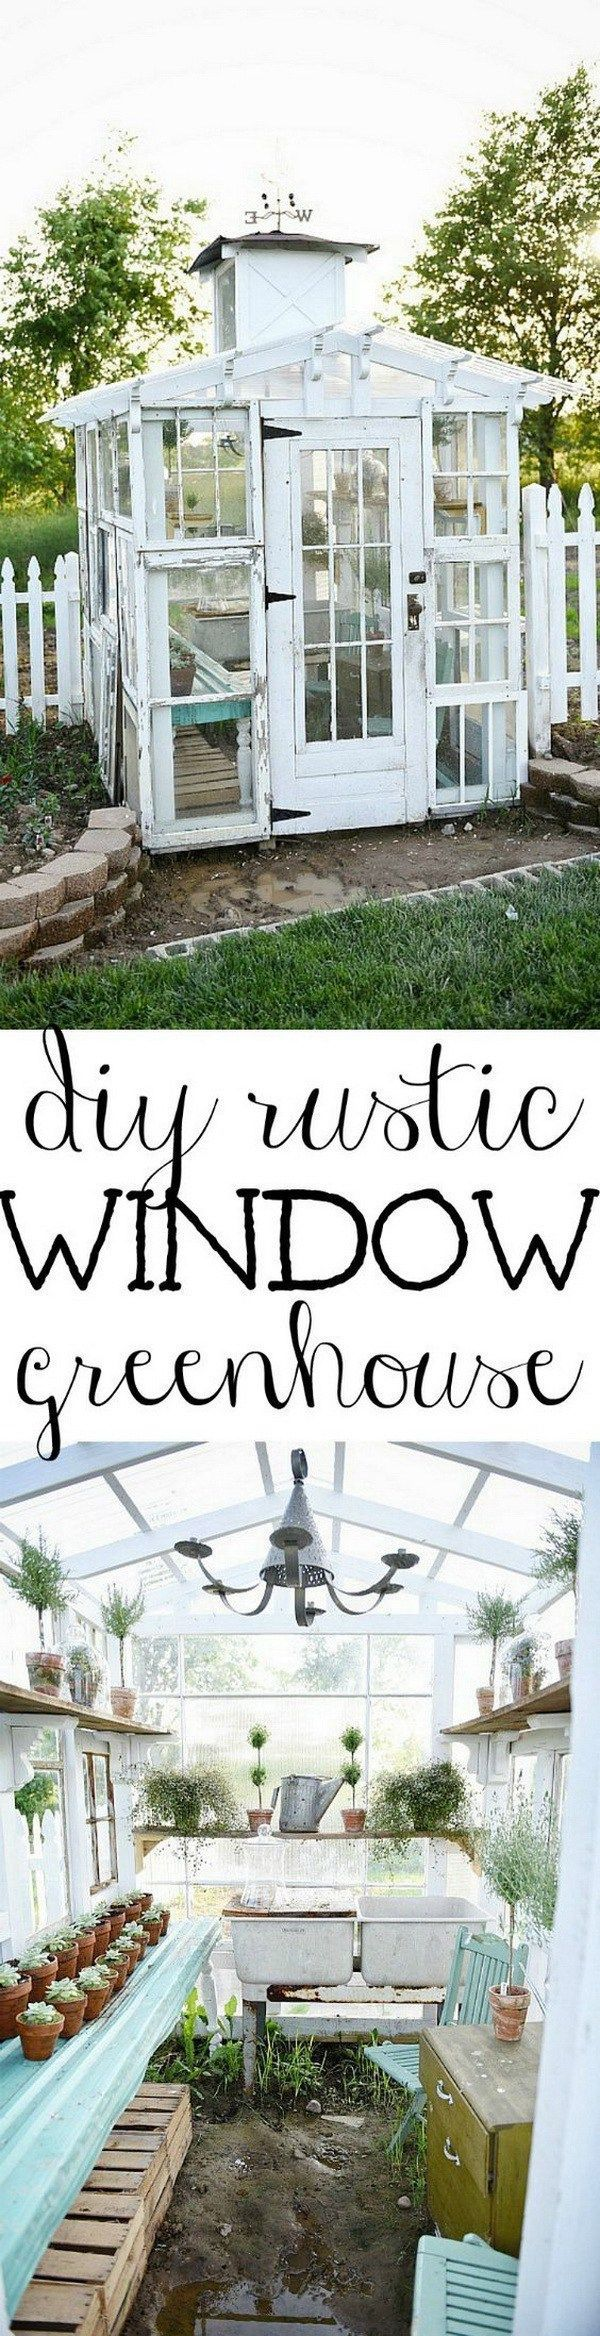 DIY Rustic Window Greenhouse.                                                                                                                                                                                 More